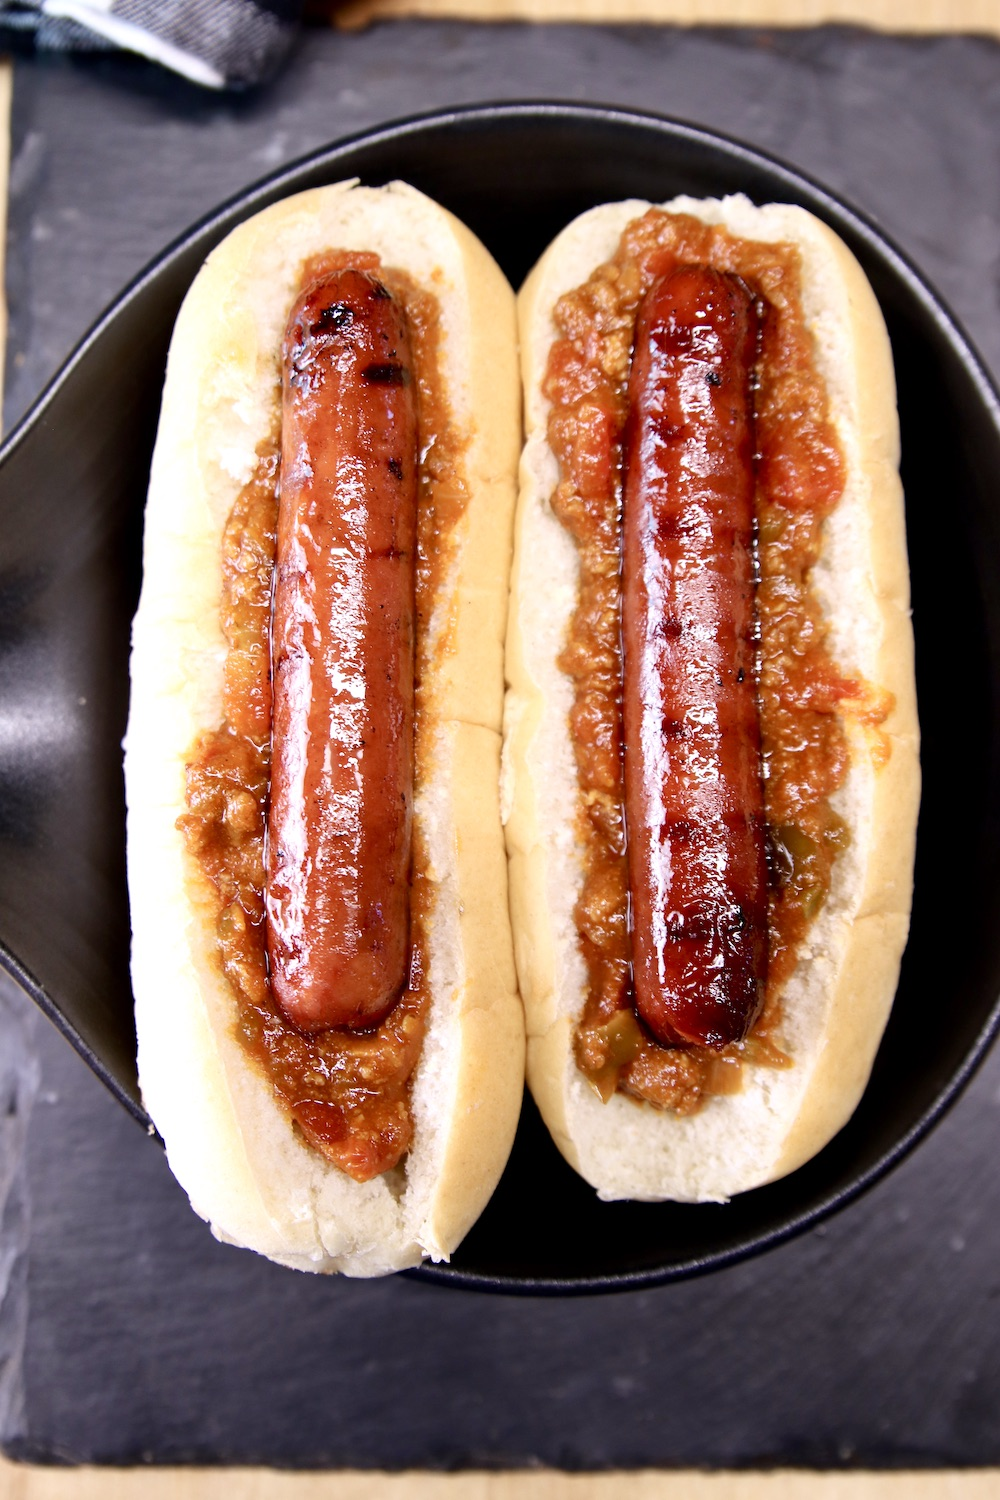 2 hoagie buns with chili and hot dogs